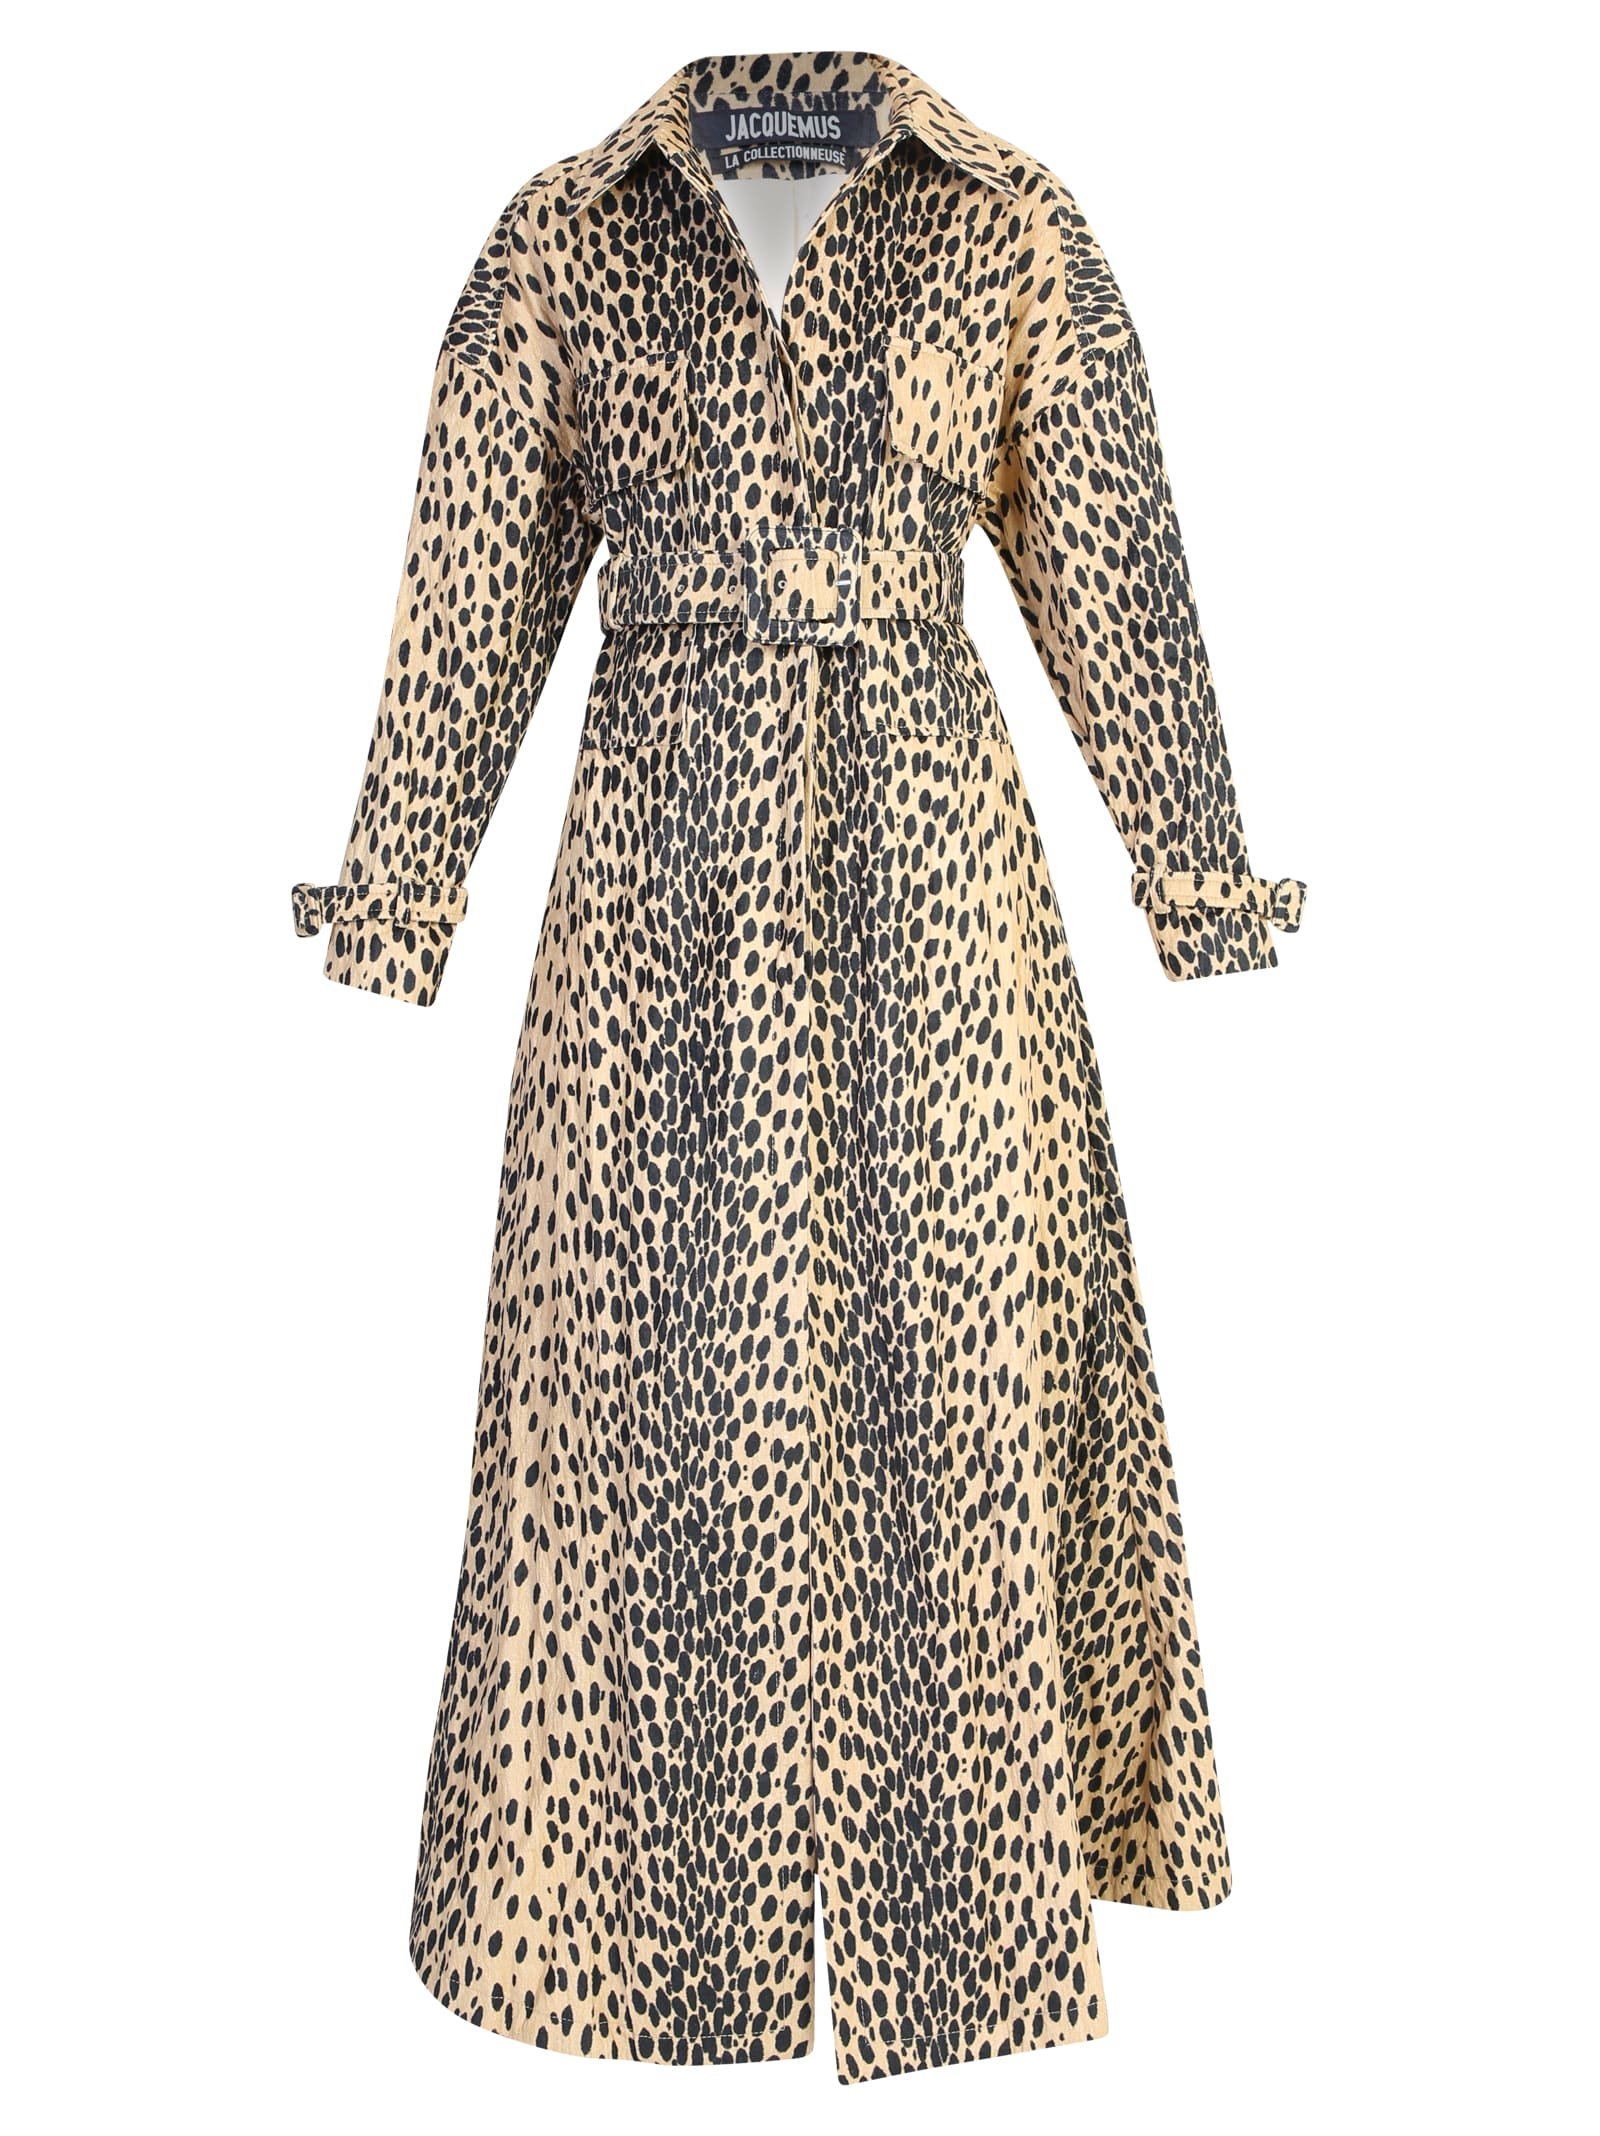 Jacquemus Leopard Print Trench Coat